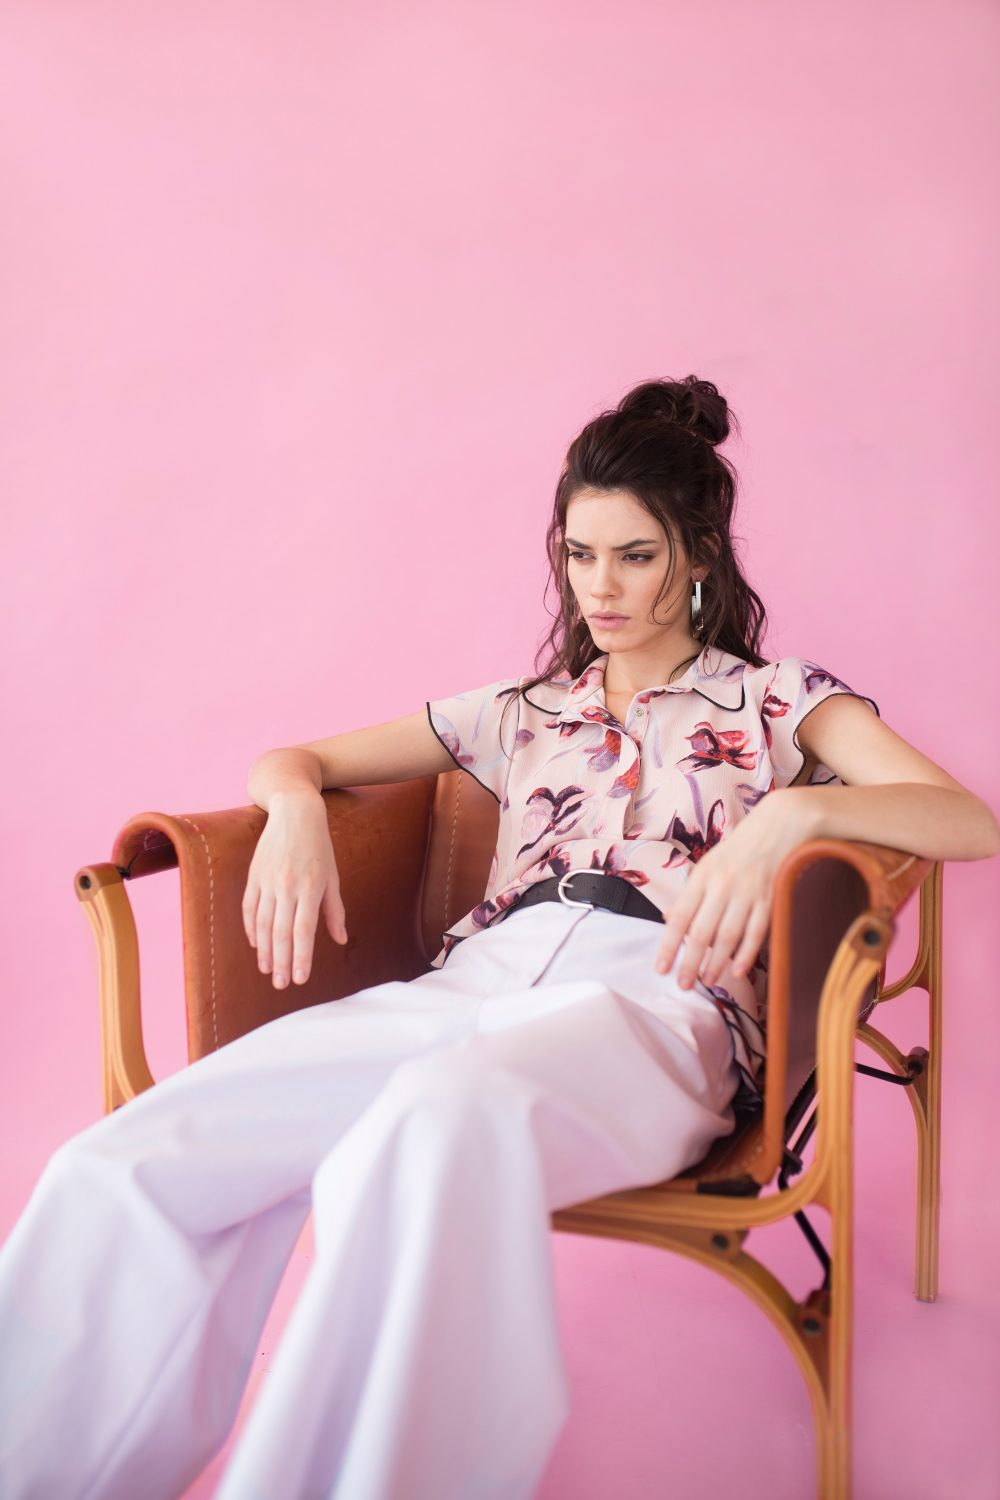 photography-of-a-woman-sitting-on-chair-1070030